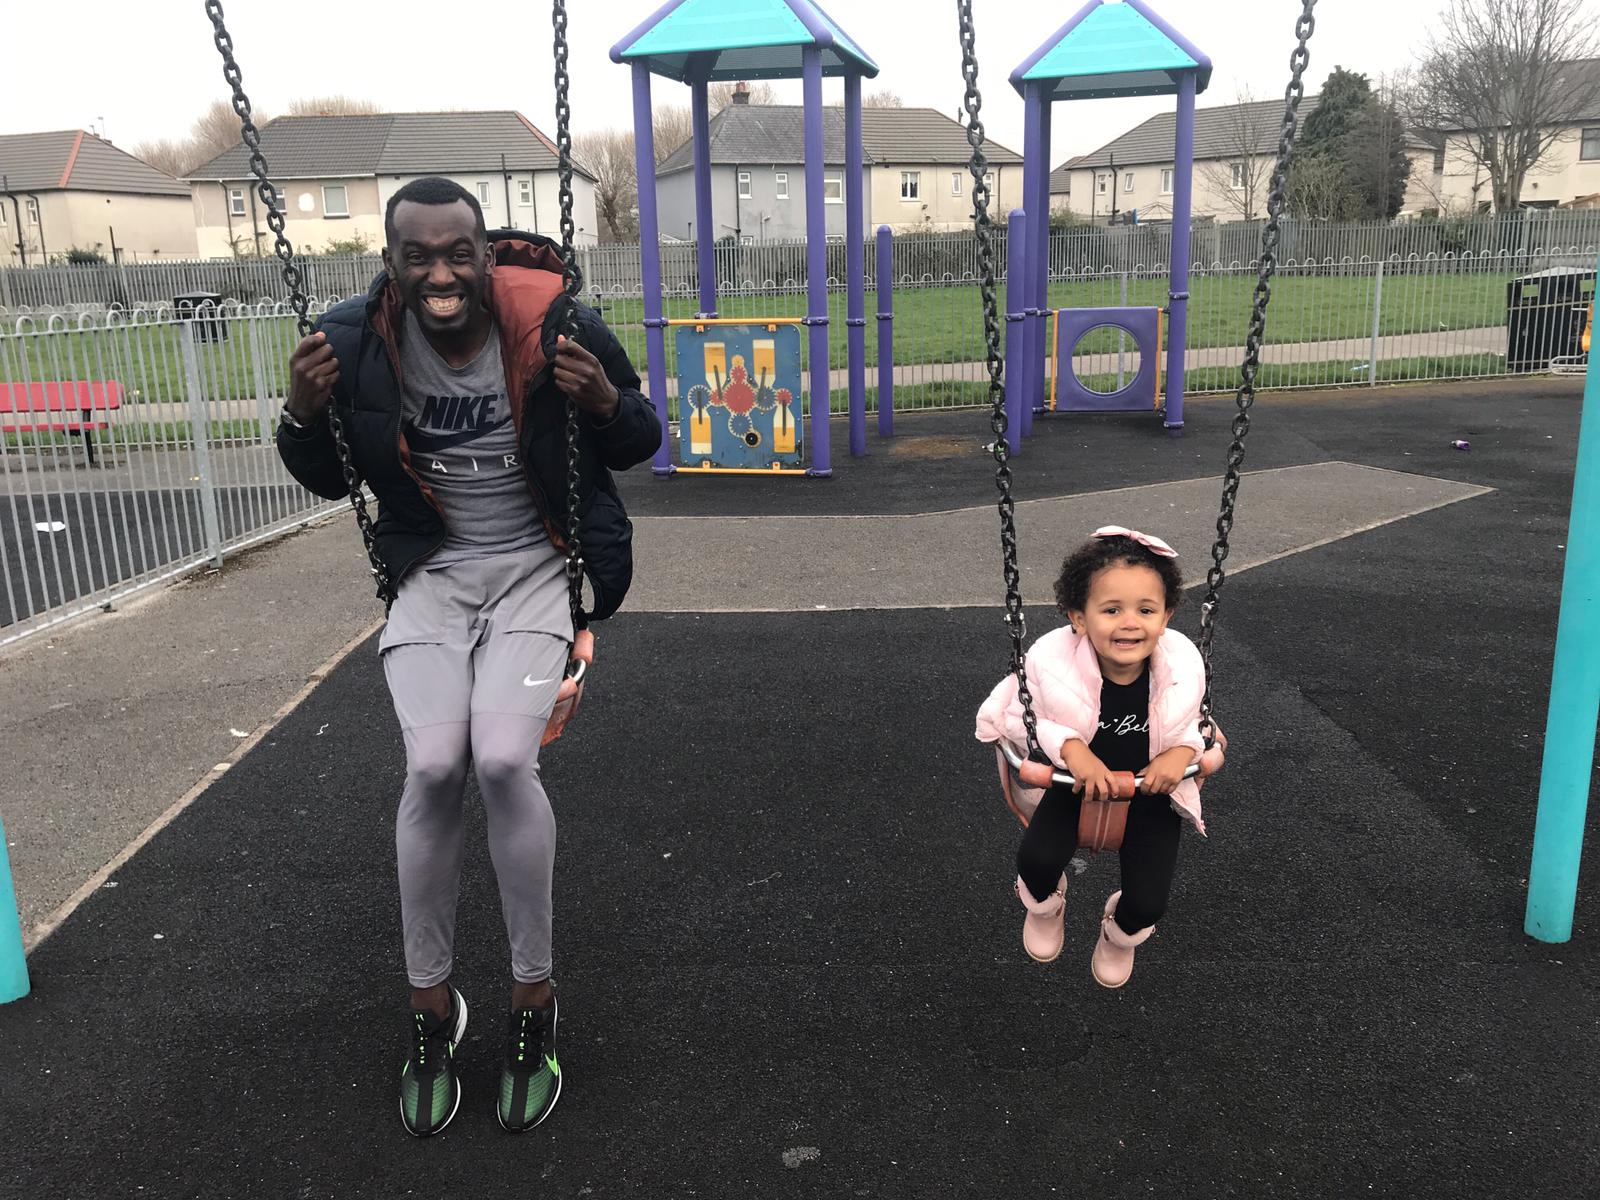 Emini on the swings with his daughter